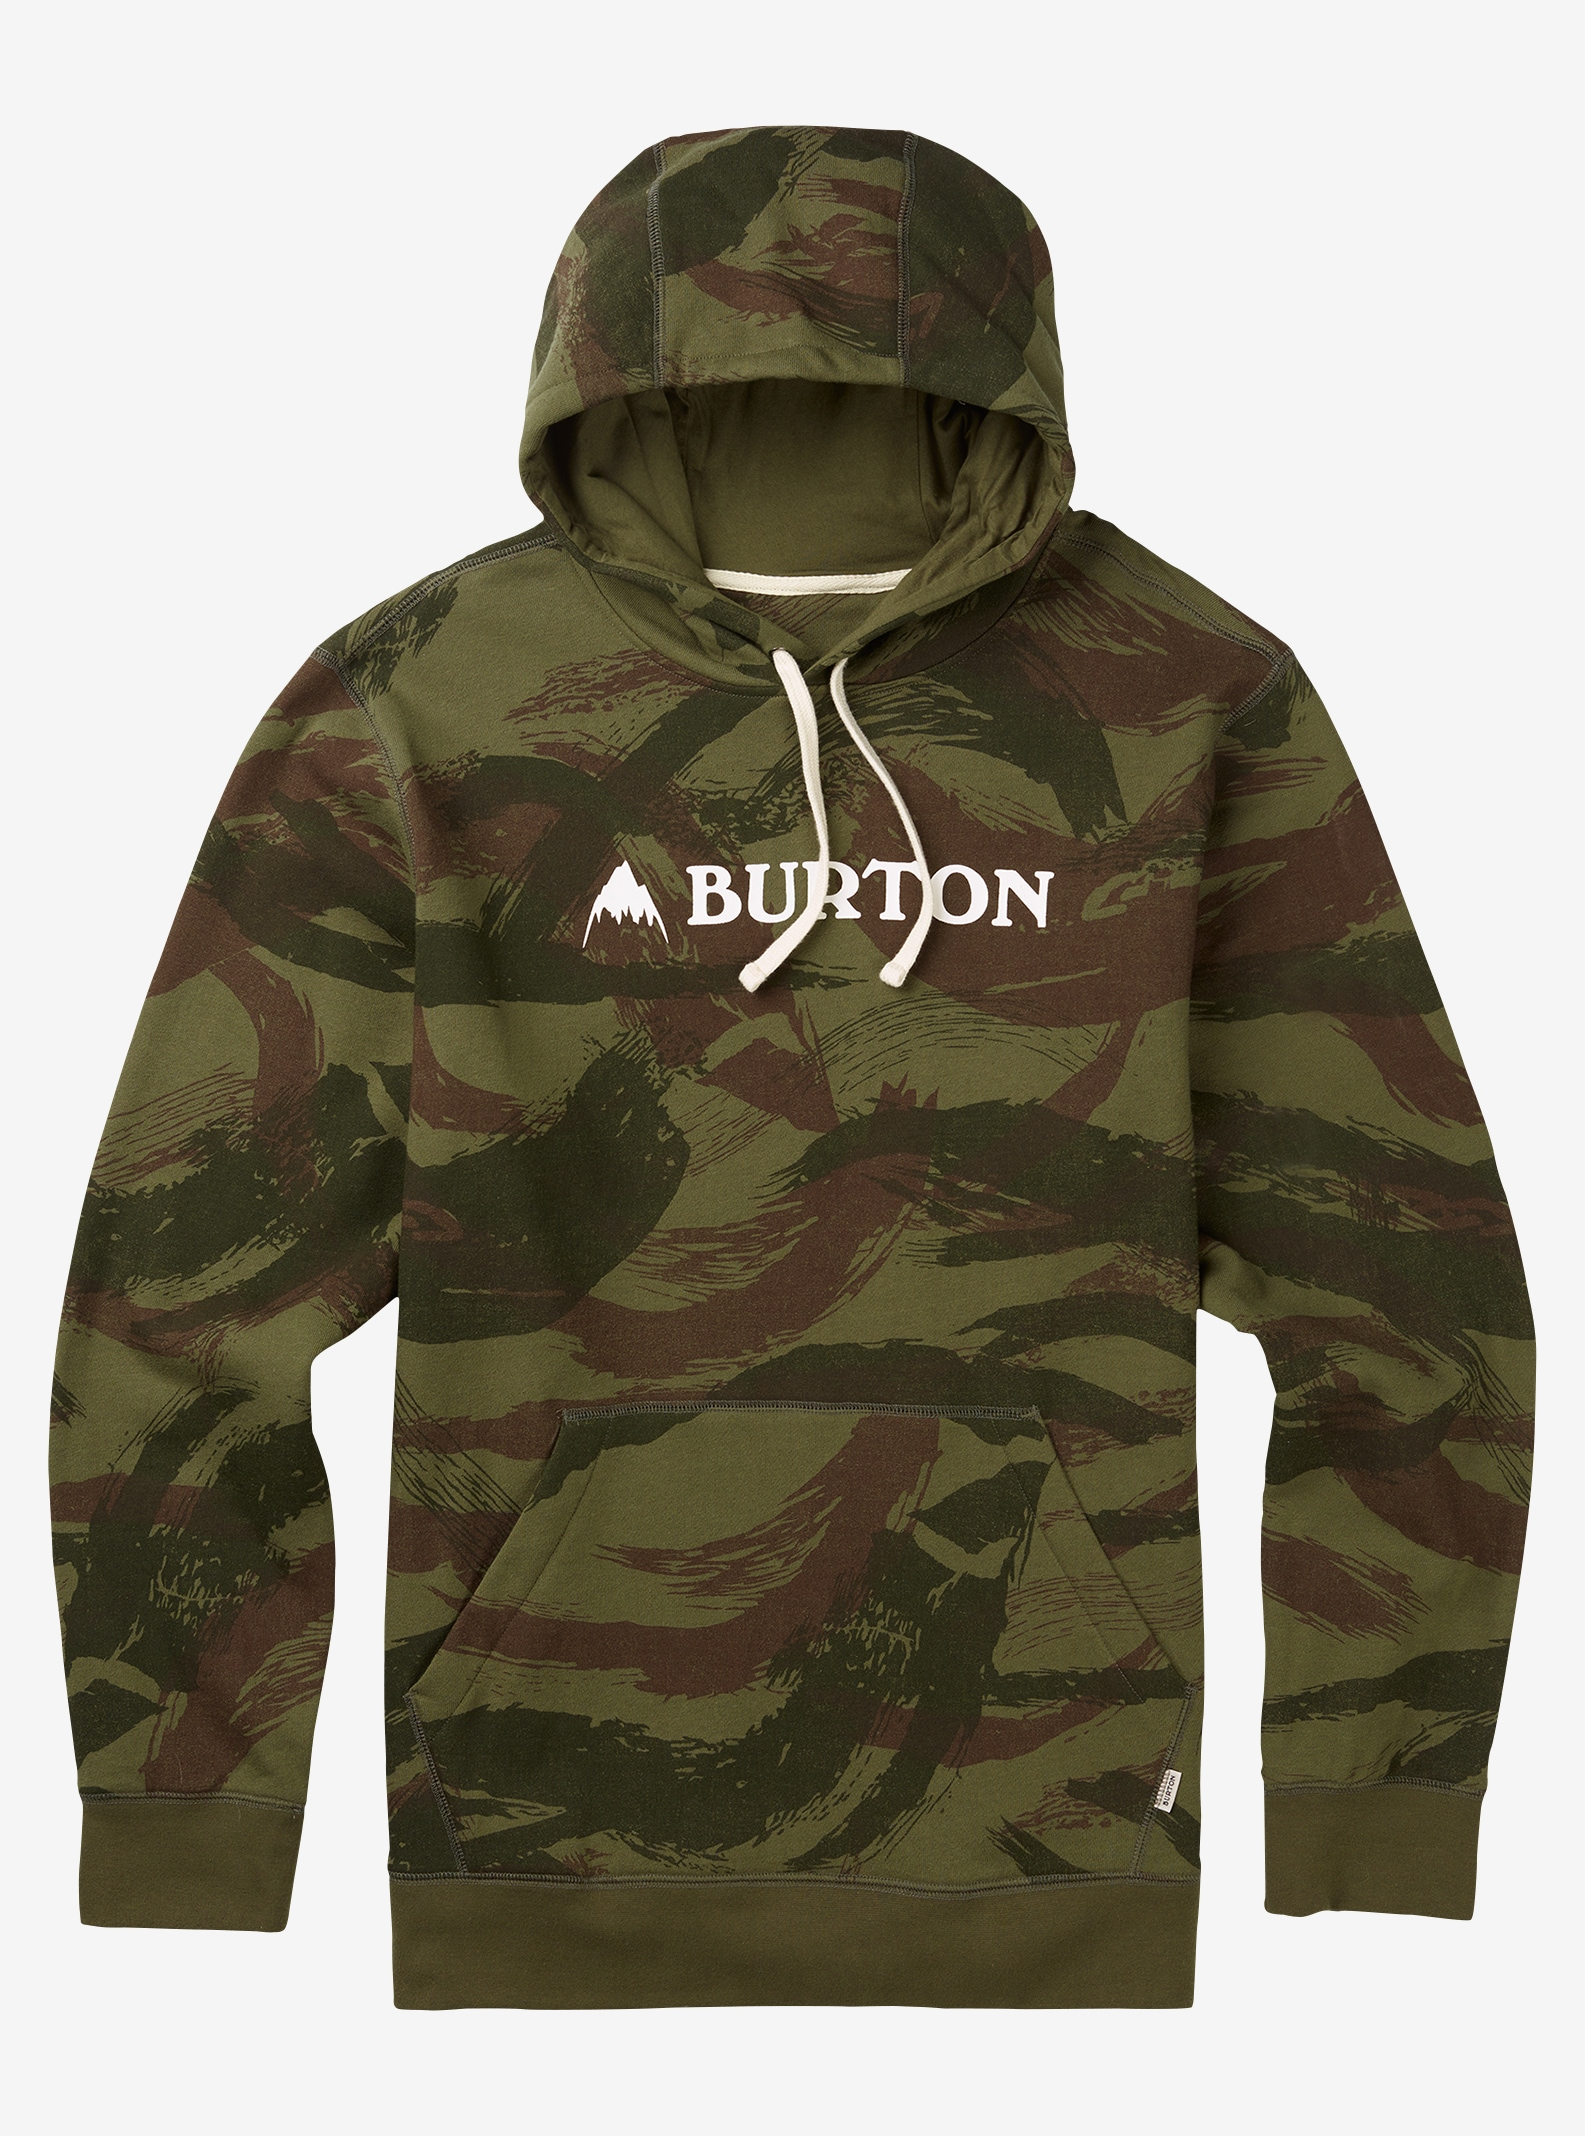 Men's Burton Mountain Horizontal Pullover Hoodie shown in Brush Camo